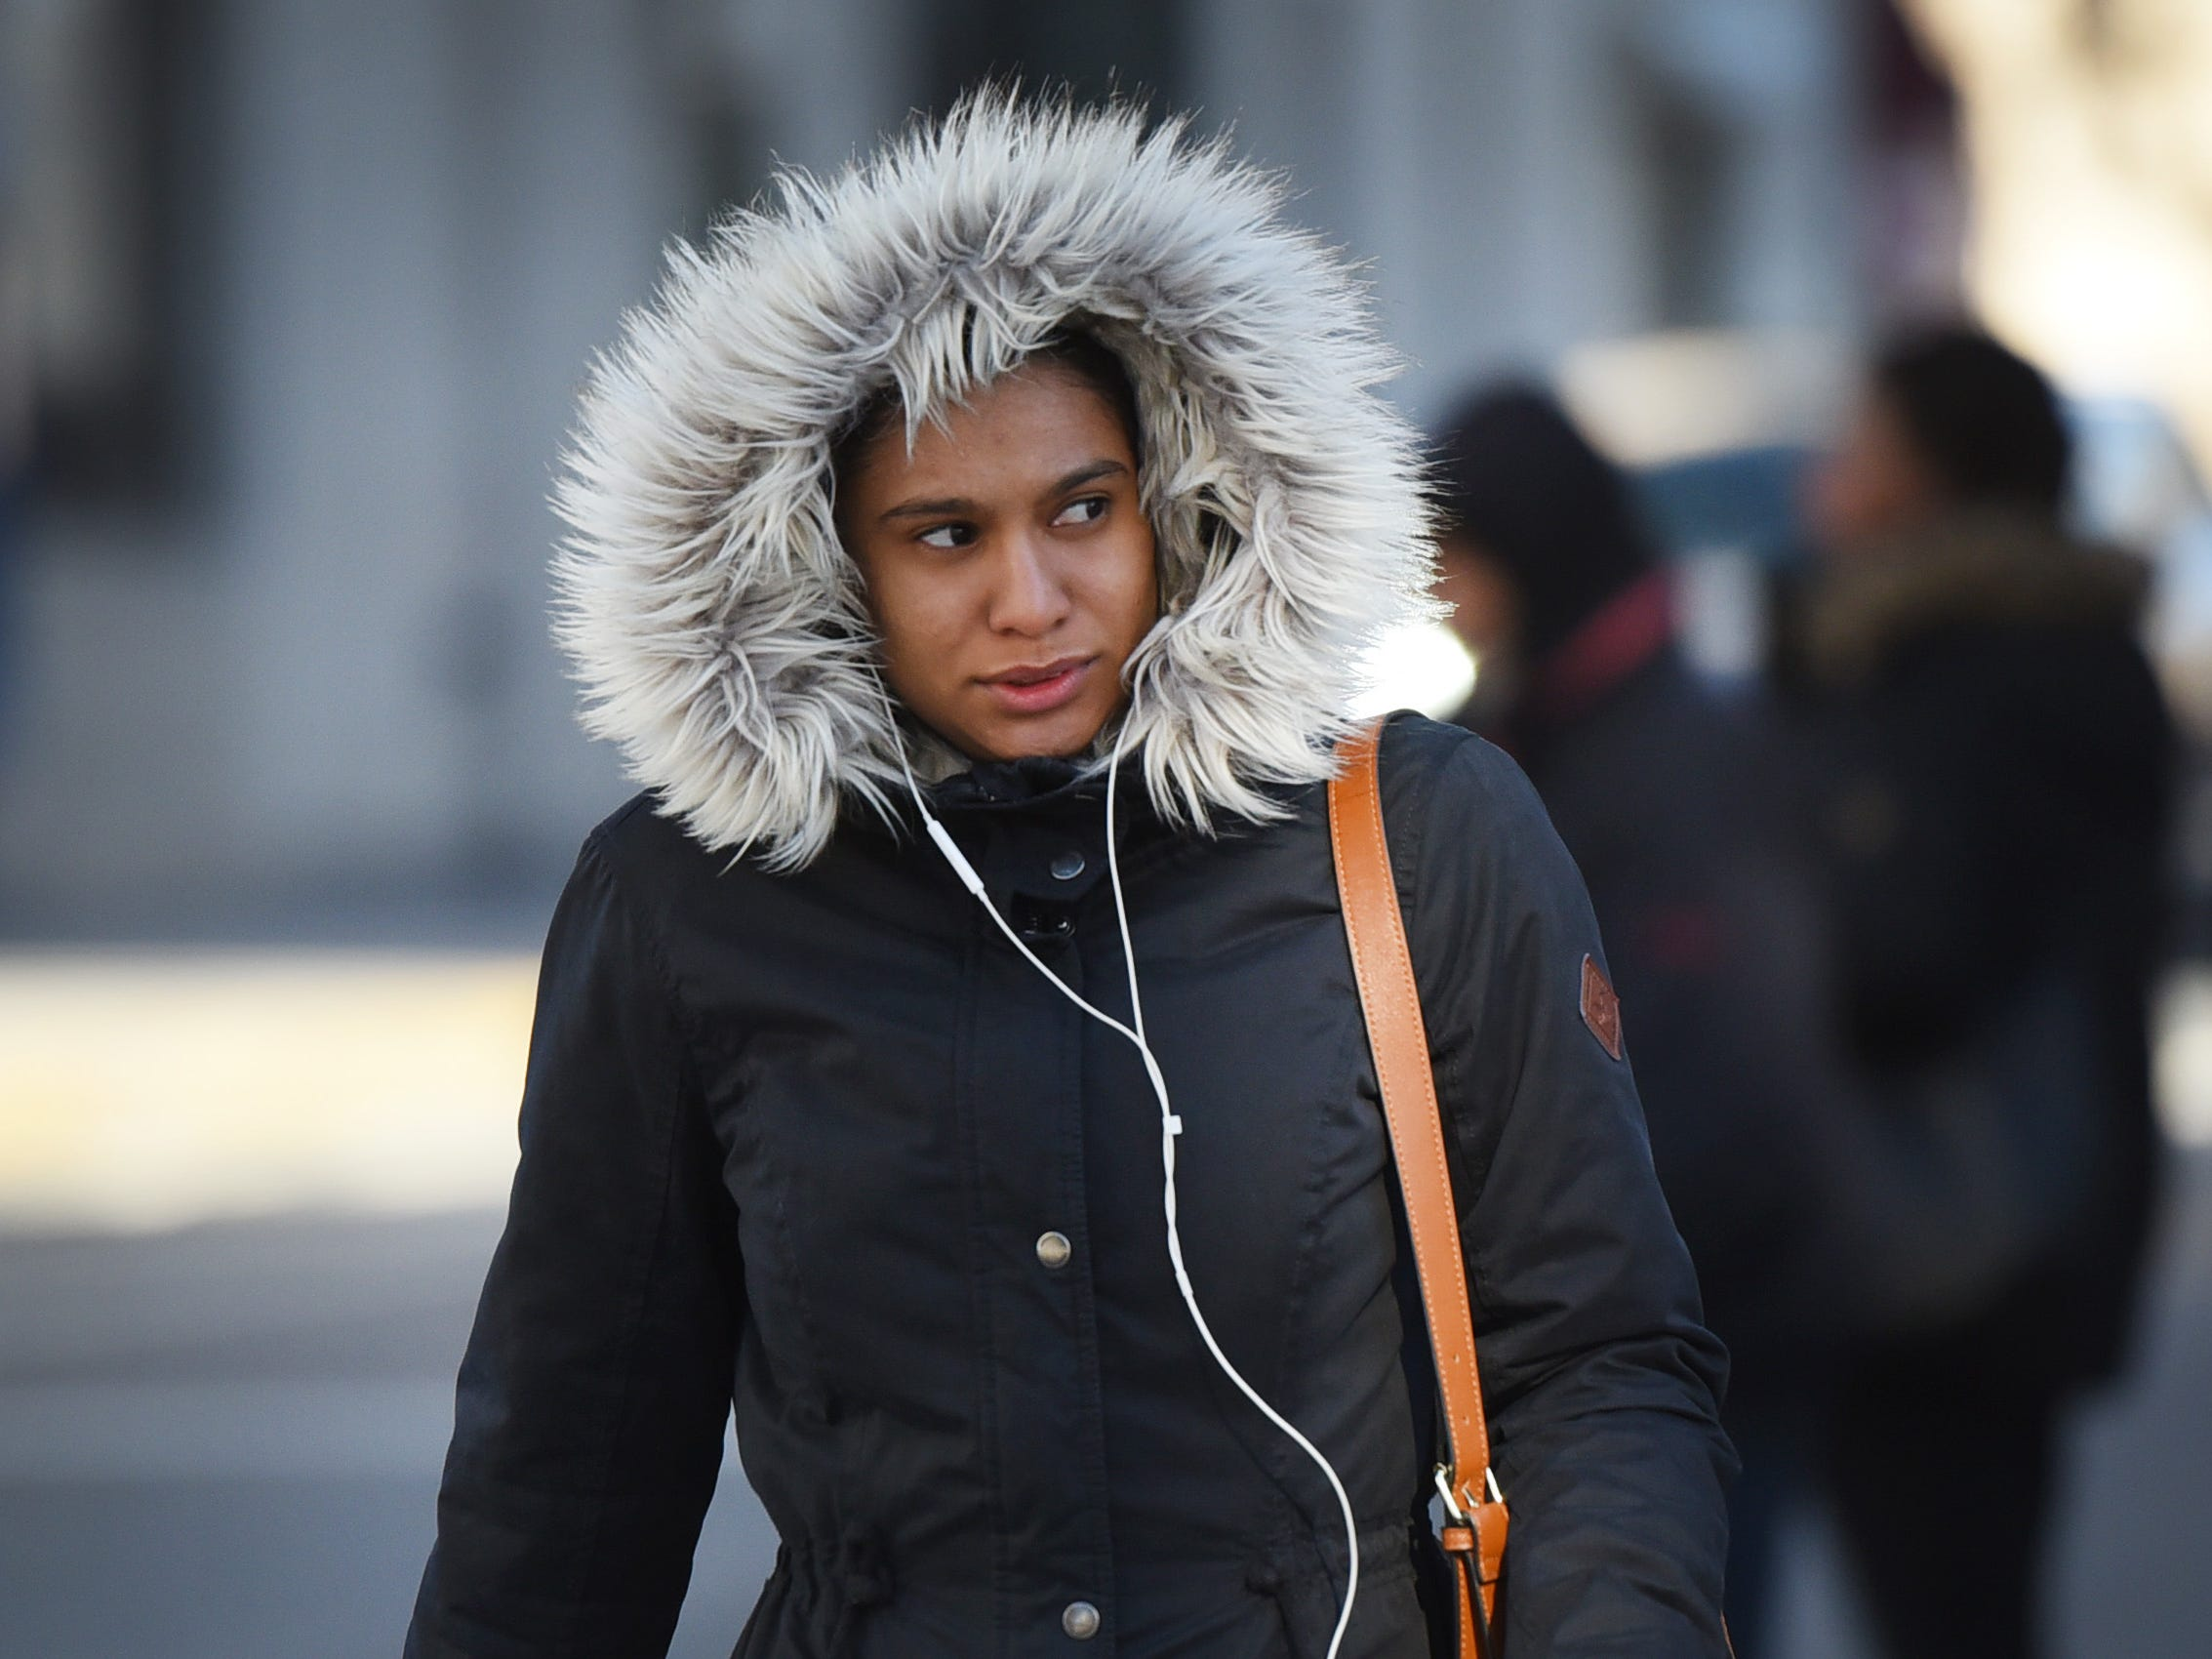 As the temperatures plummet, a woman braves the cold as she crosses the street in Paterson, NJ., Jan 30, 2019.